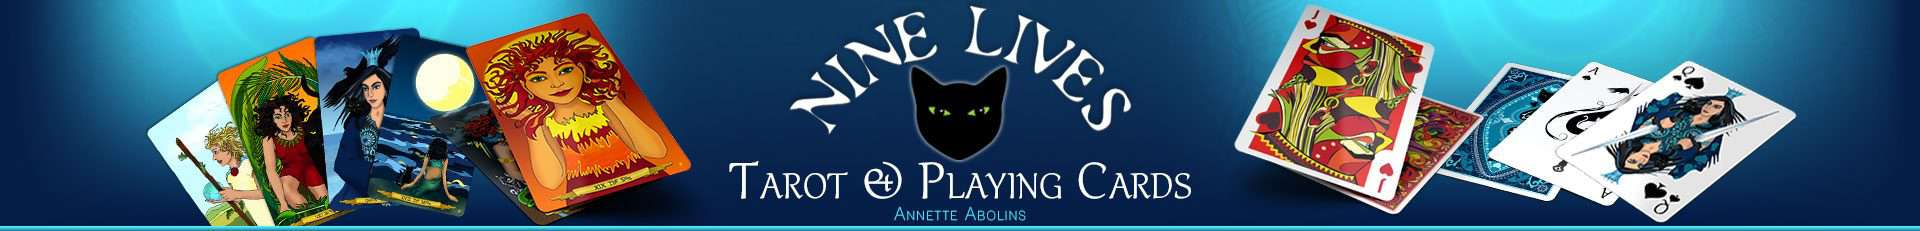 Nine Lives Tarot & Playing Cards